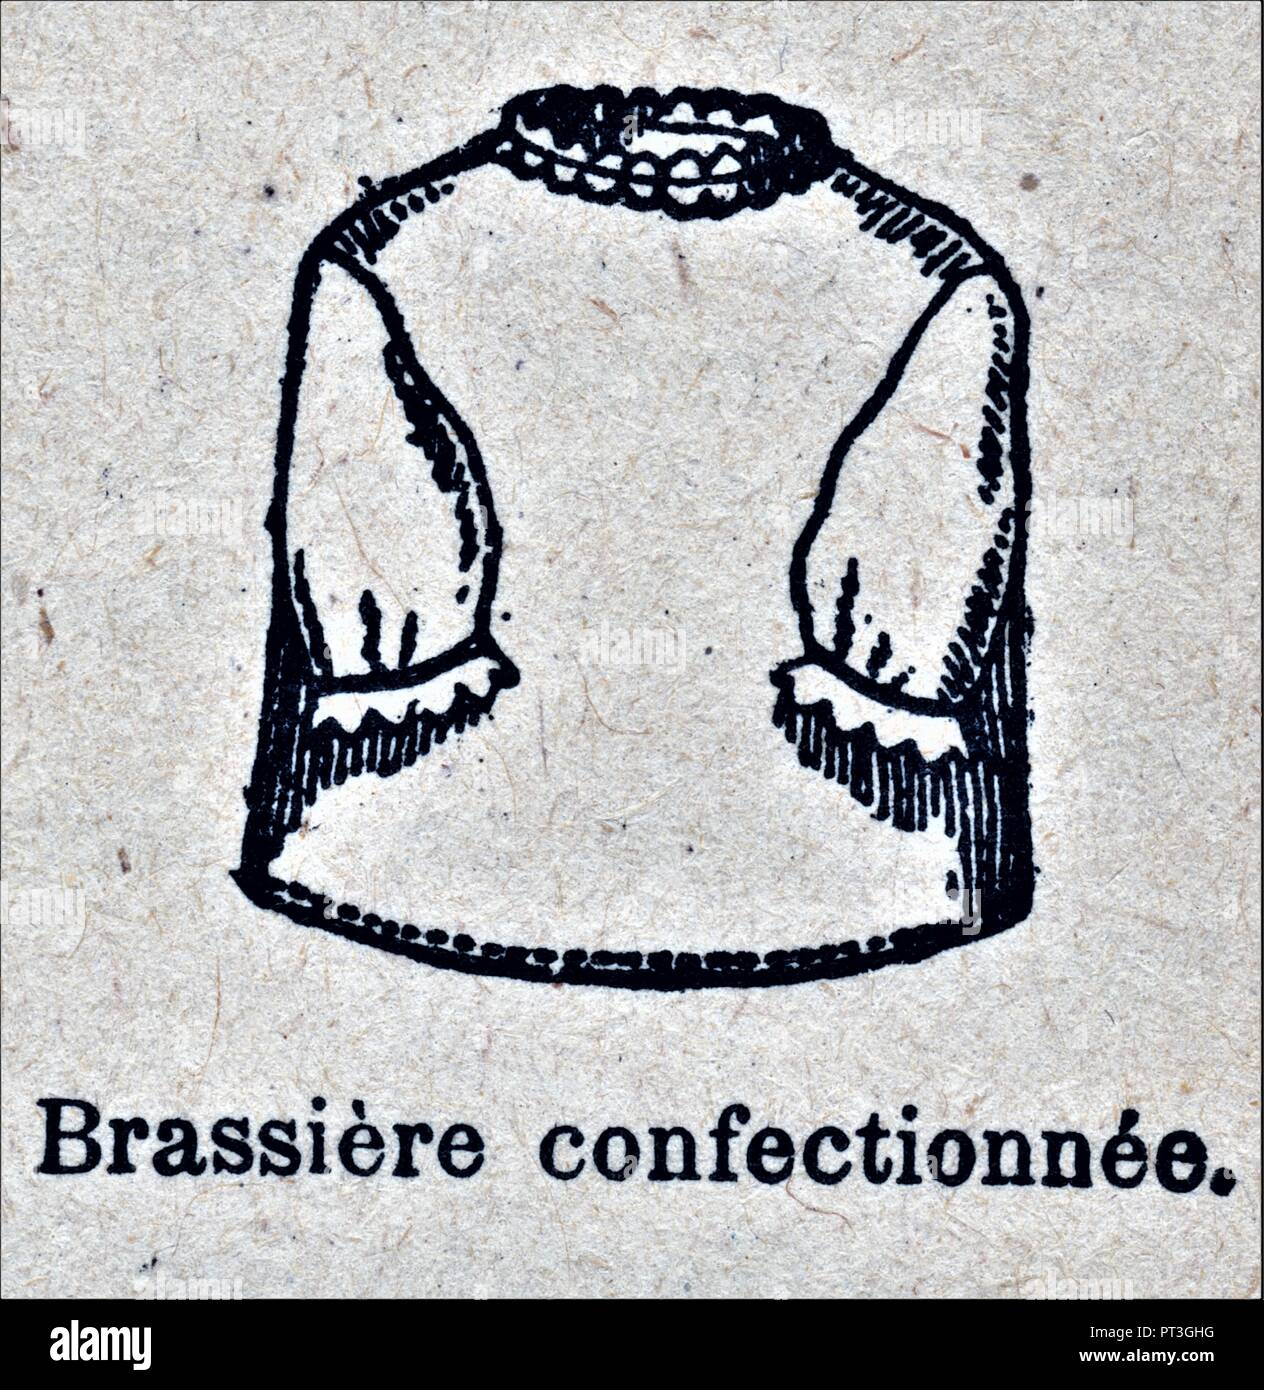 BRASSIERE CONFECTIONNEE - Stock Image